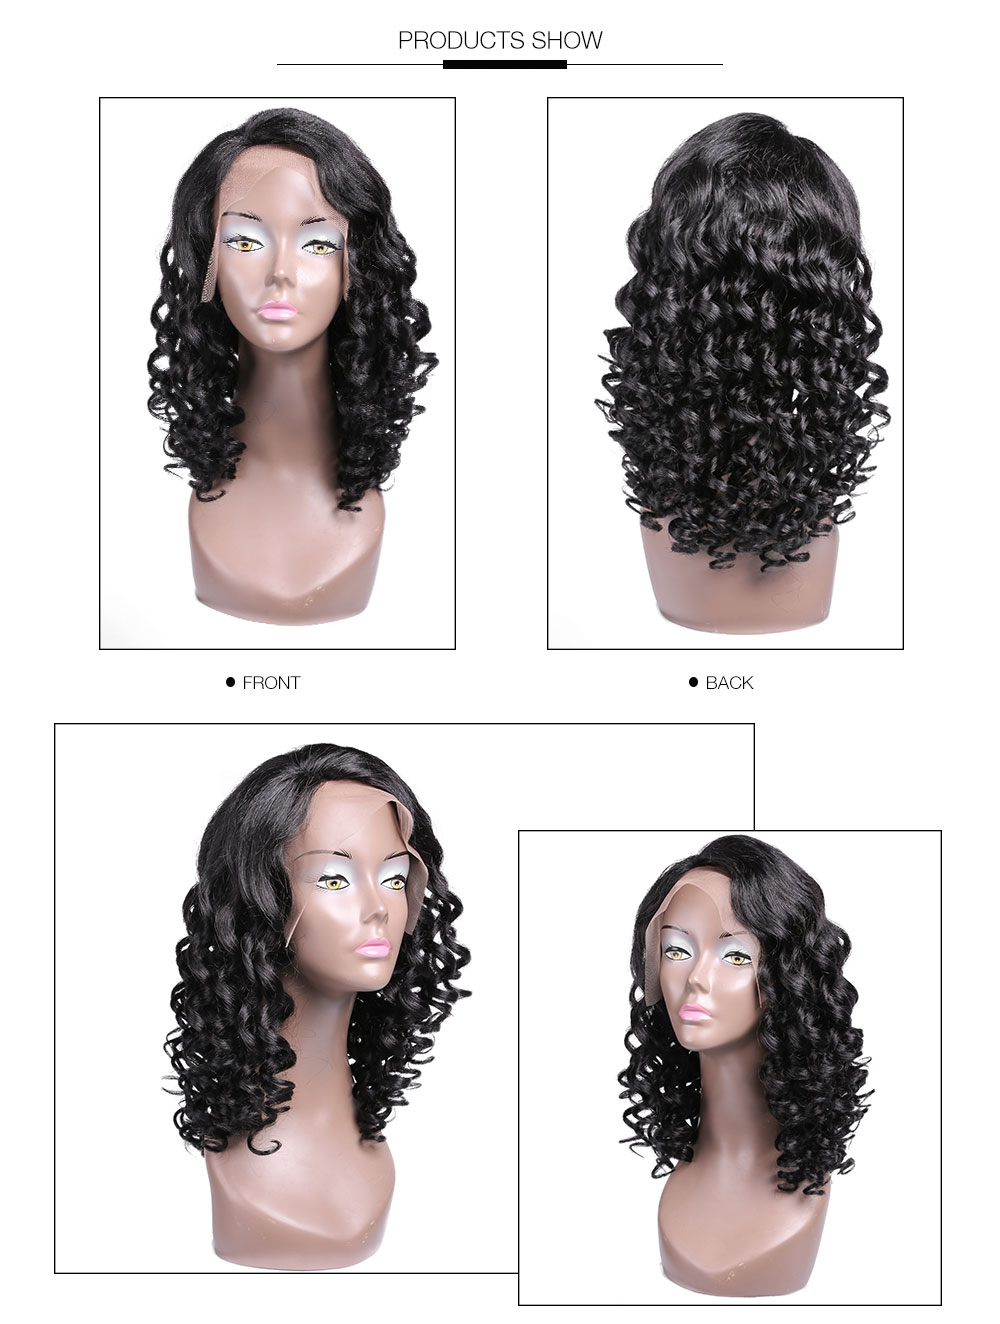 AfricanMall 100% Curly Human Hair Lace Front Wig